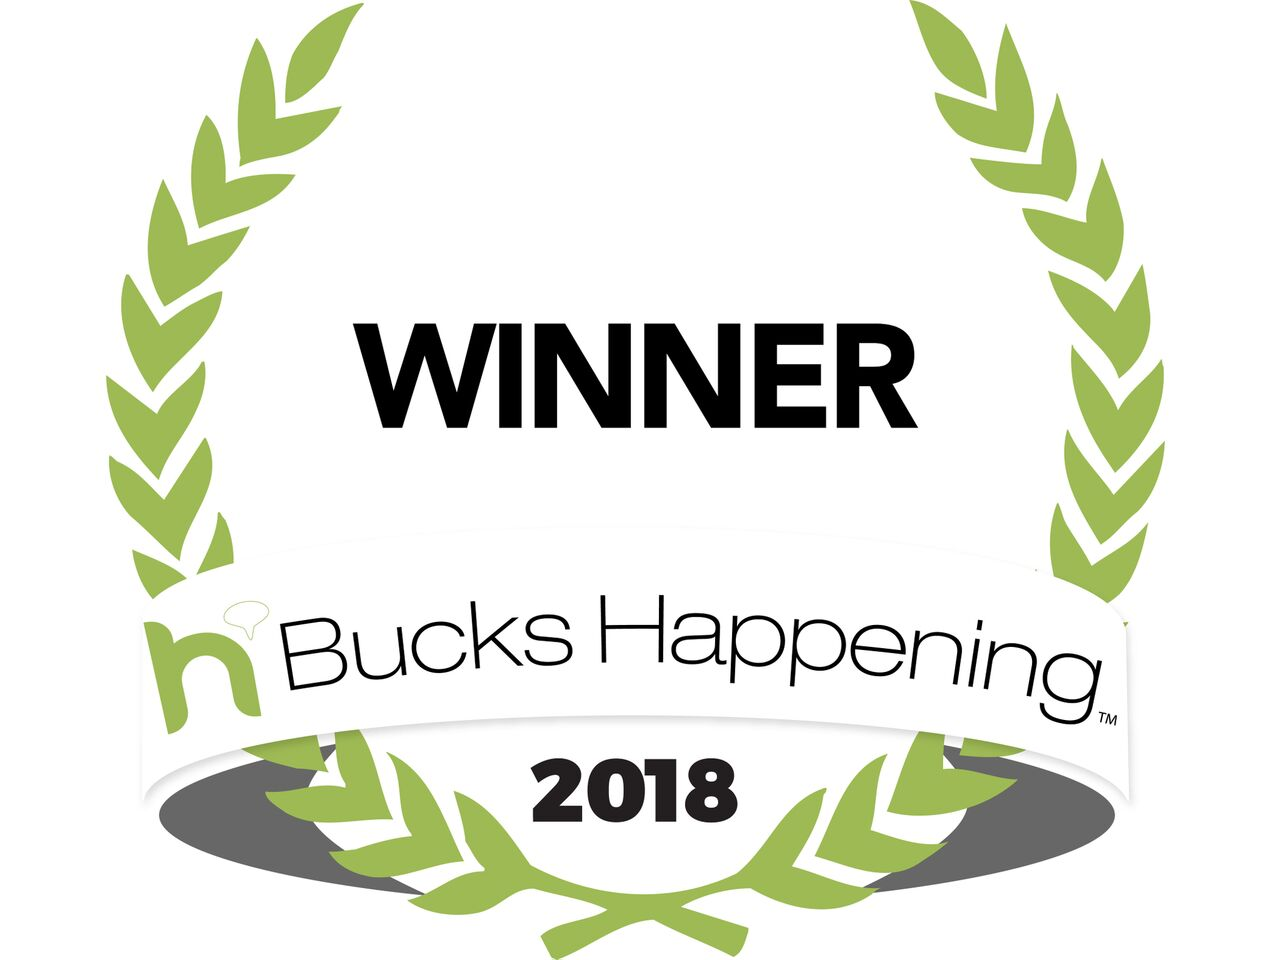 A BETTER SPACE IS PROUD TO BE THE RECIPIENT OF THE 2018 BEST OF BUCKS HAPPENING AWARD FOR ORGANIZATION AND PERSONAL ASSISTANCE SERVICES.